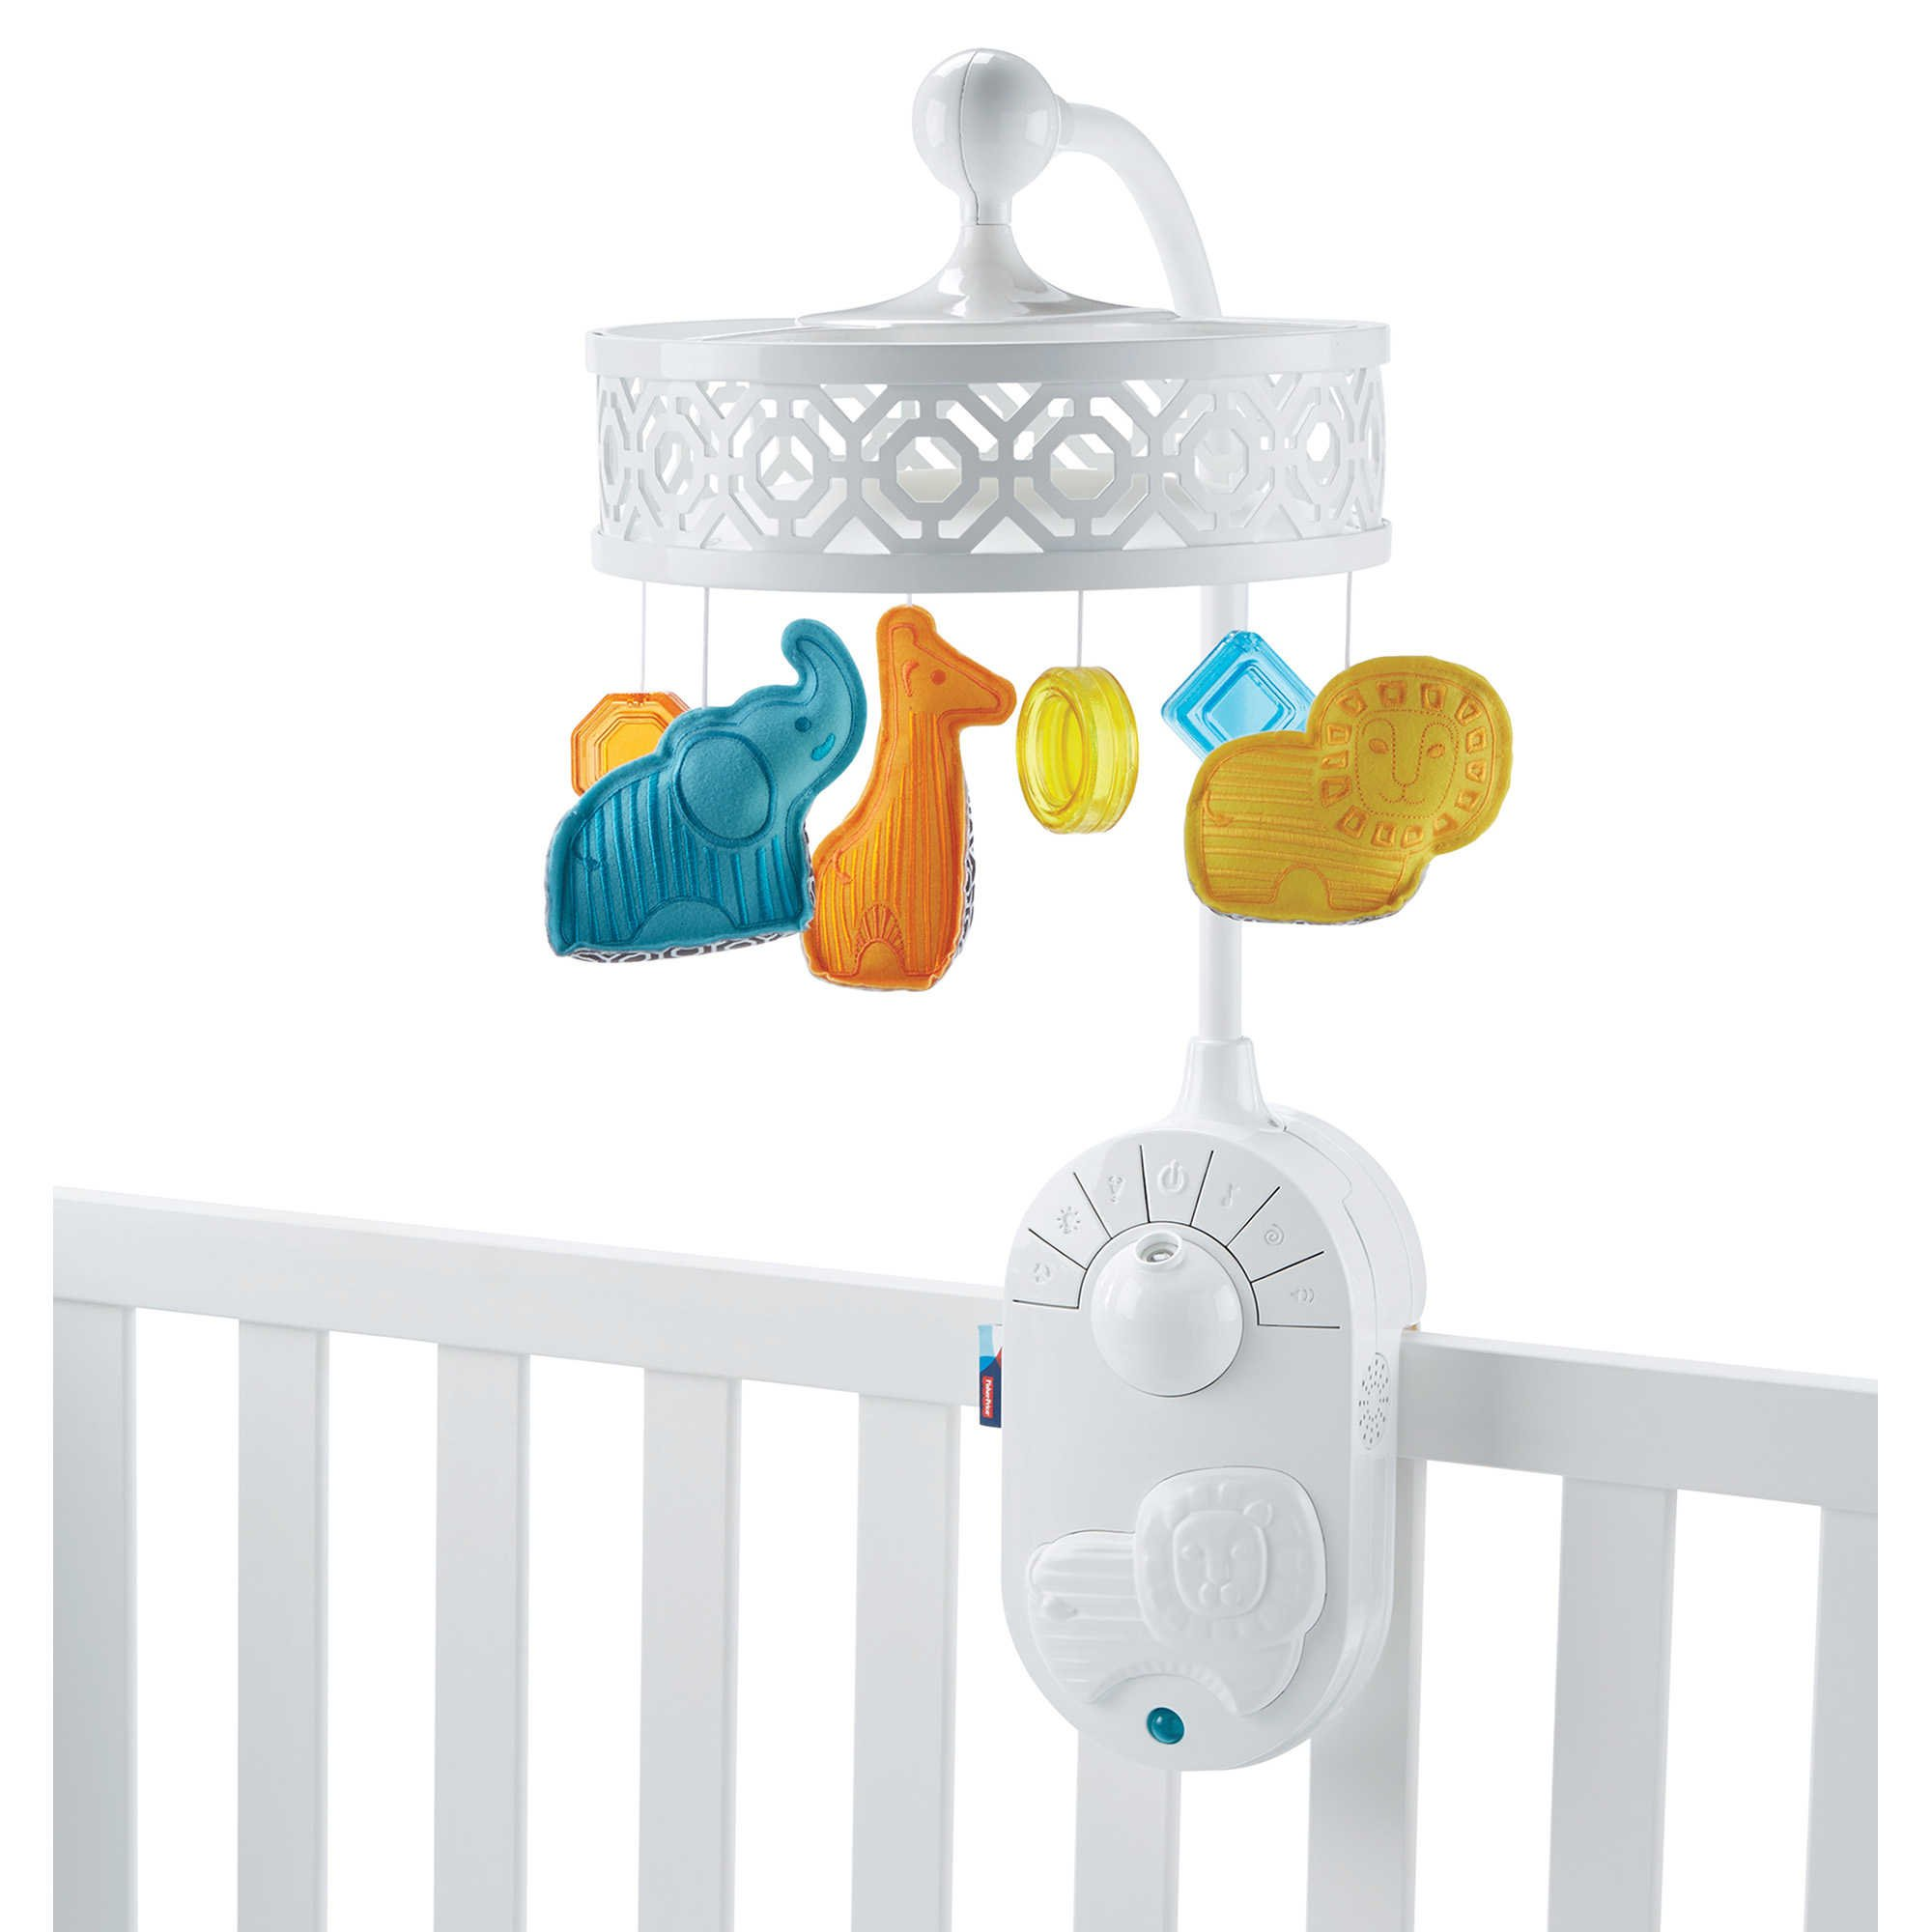 Cheap Fisher Price Toys Online Find Fisher Price Toys Online Deals